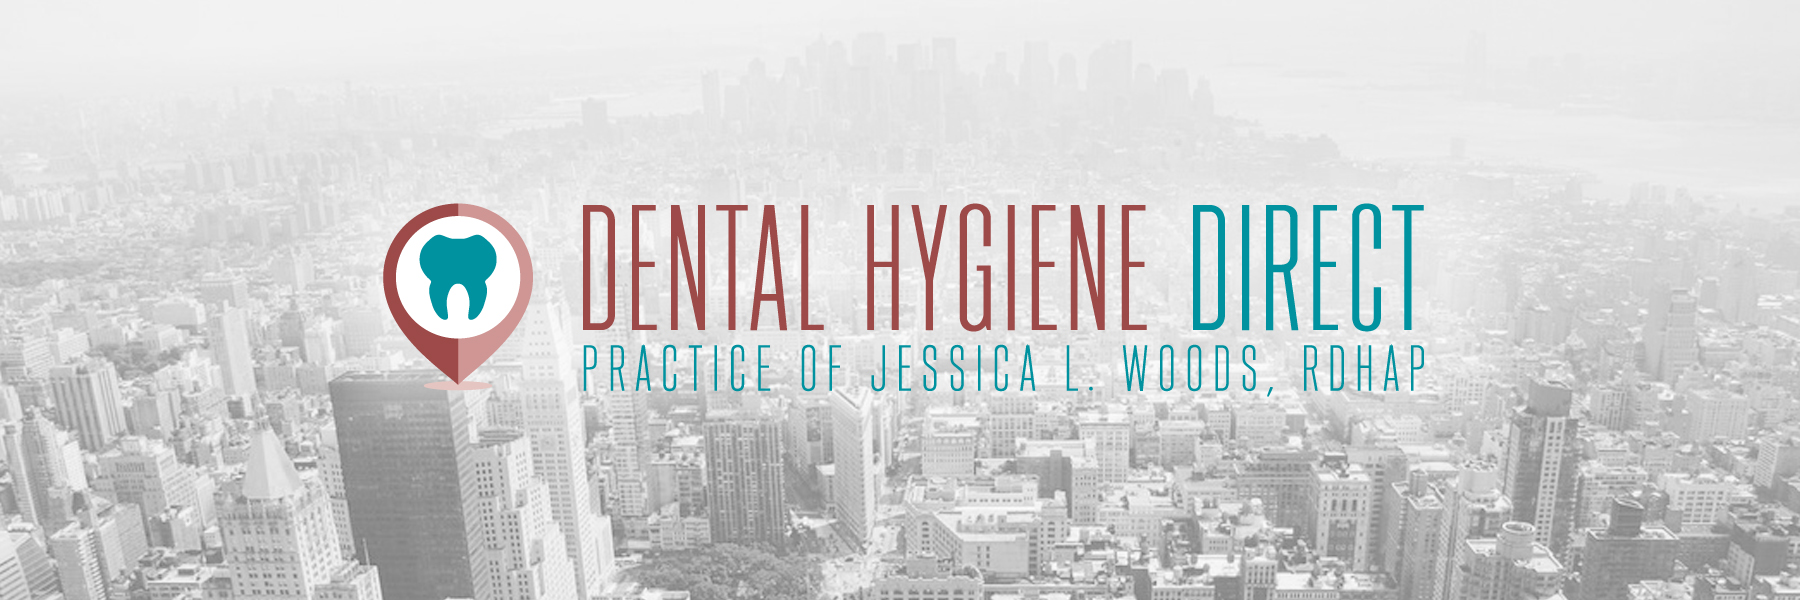 Dental Hygiene Direct